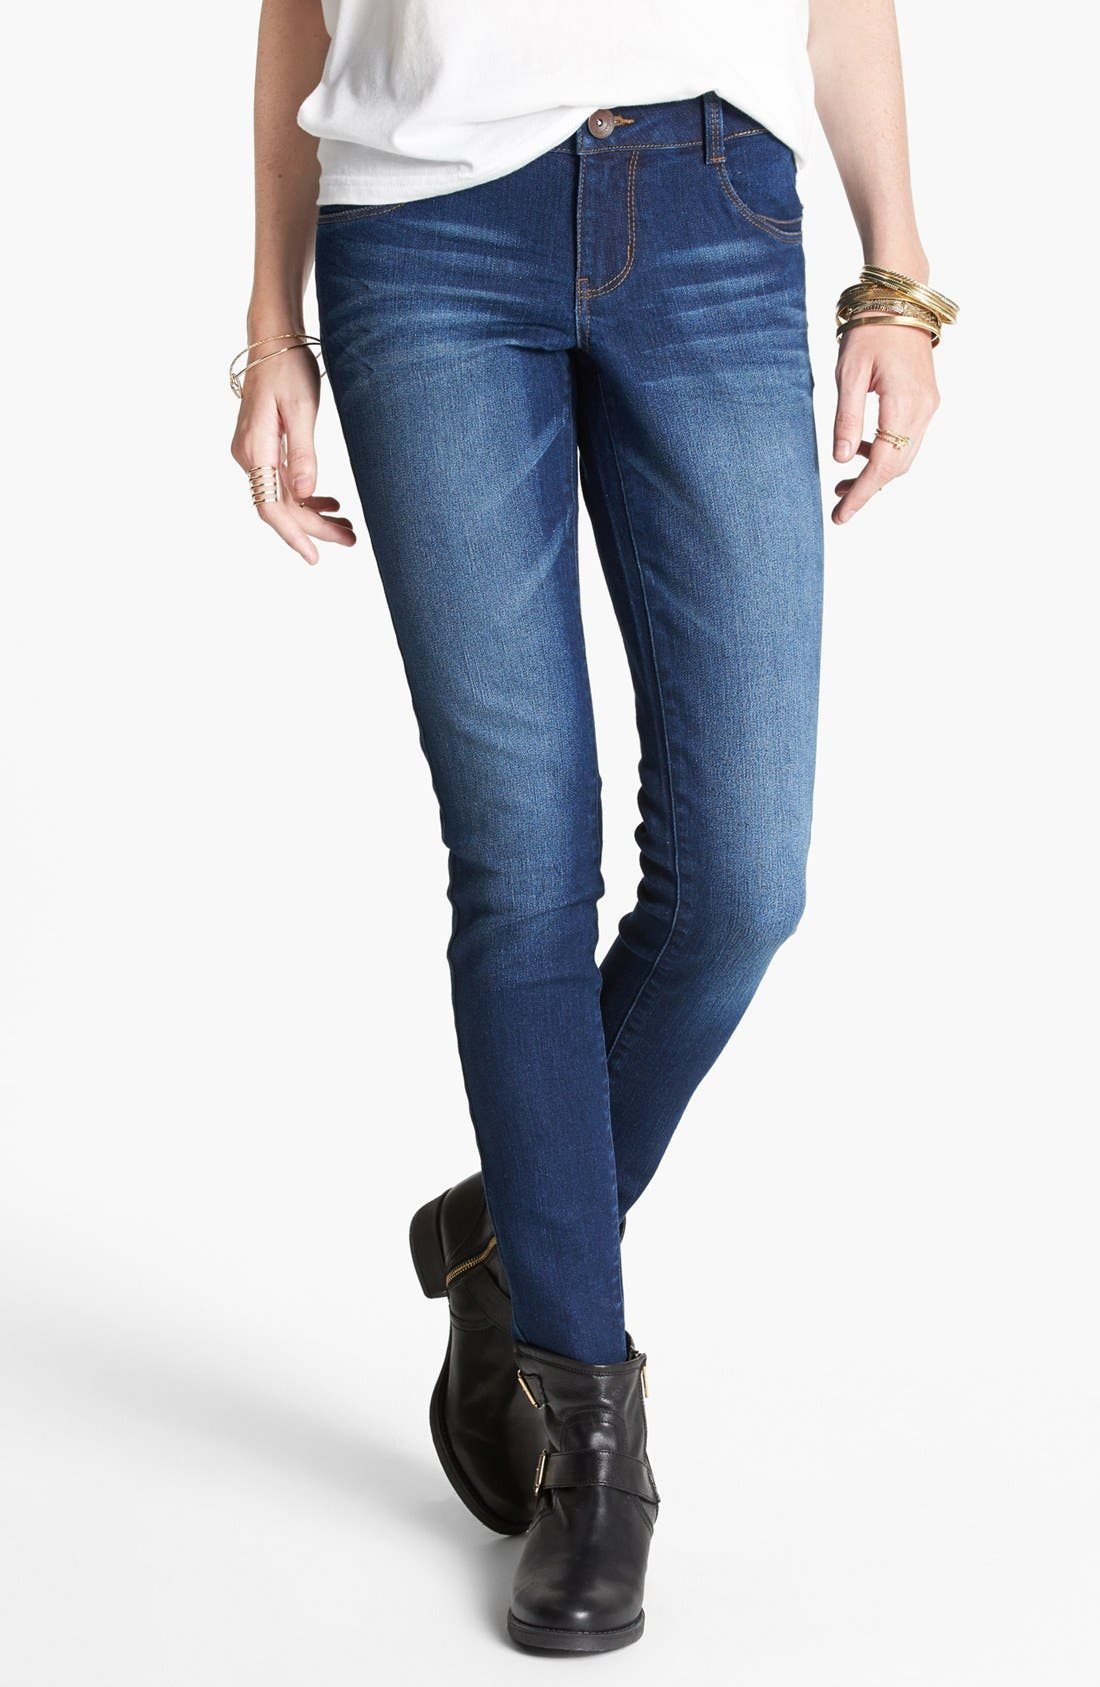 Main Image - Jolt Faded Skinny Jeans (Dark) (Juniors) (Online Only)